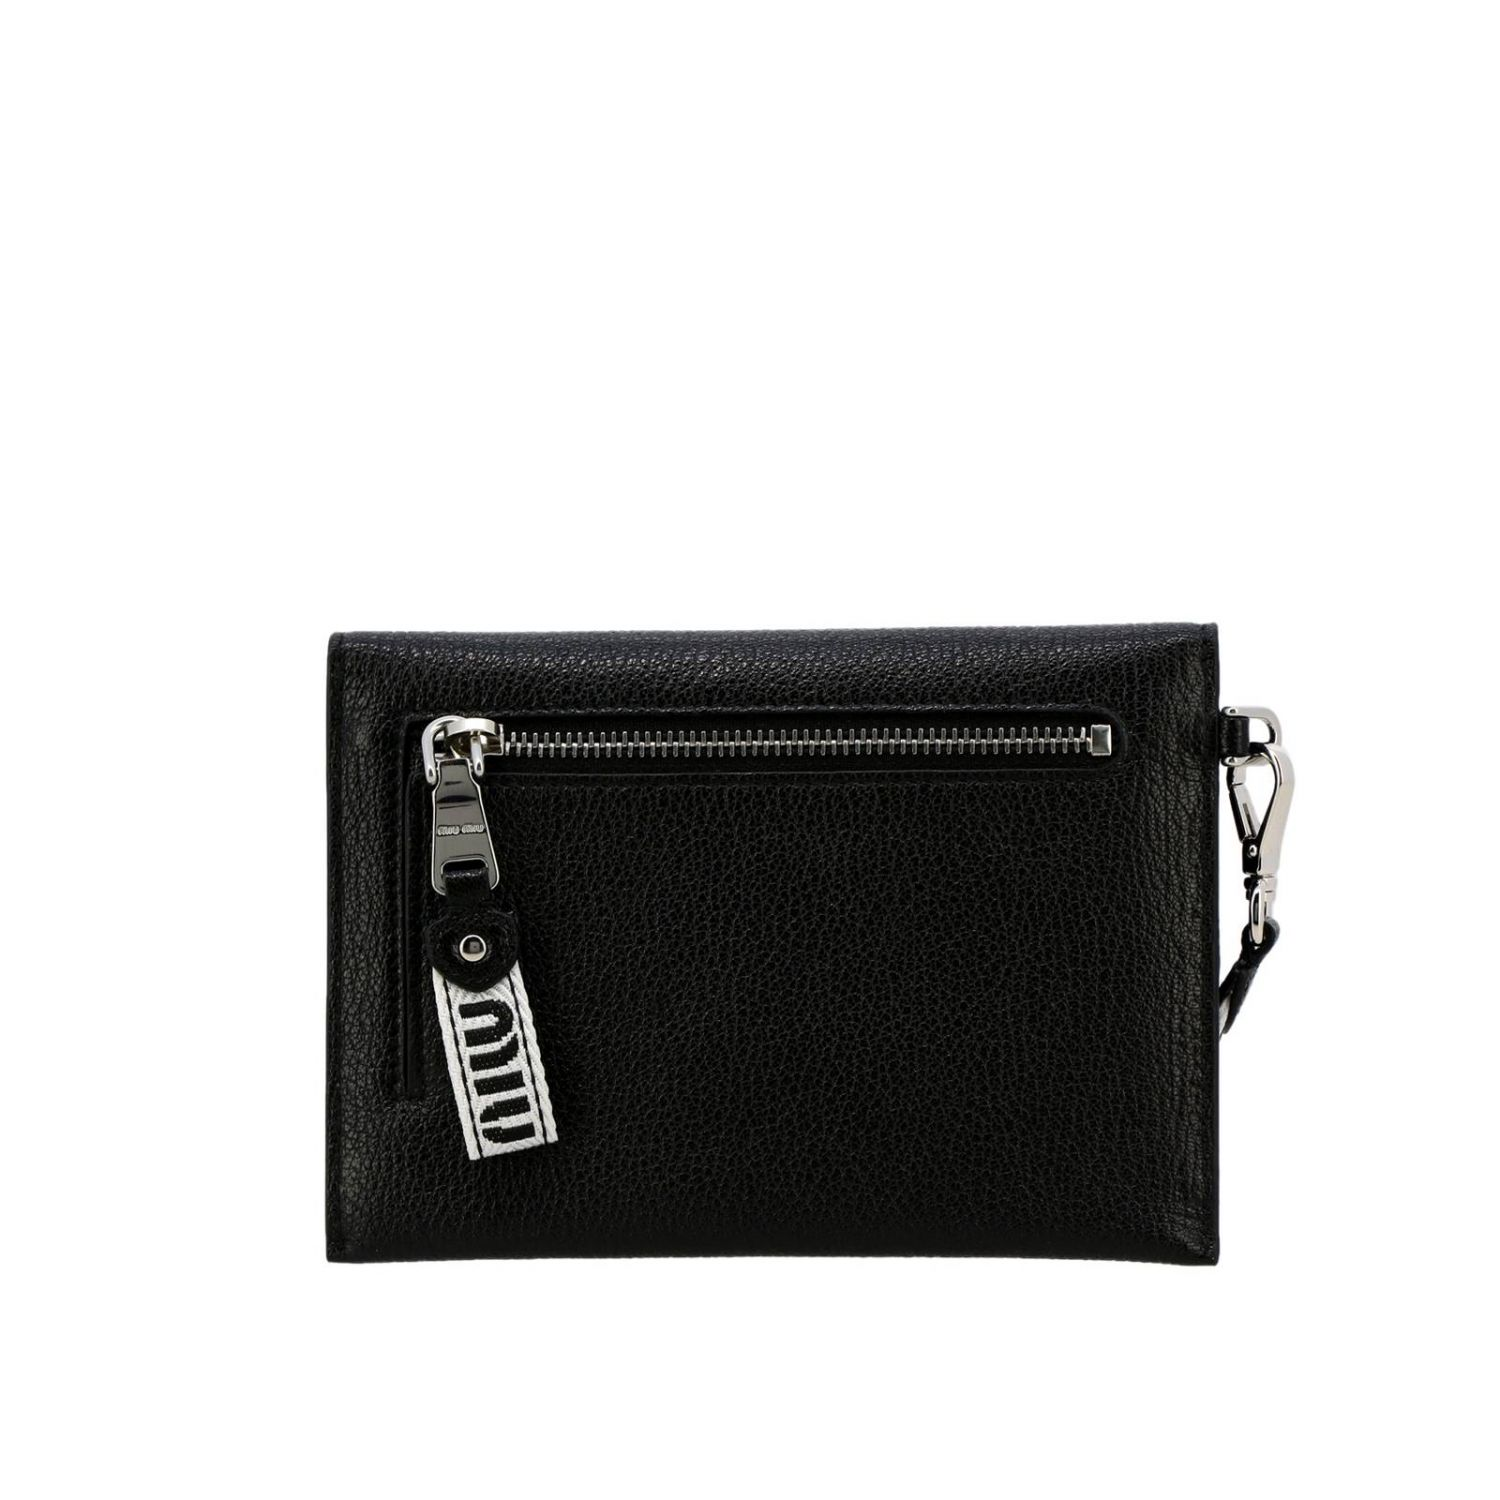 Wallet women Miu Miu black 3